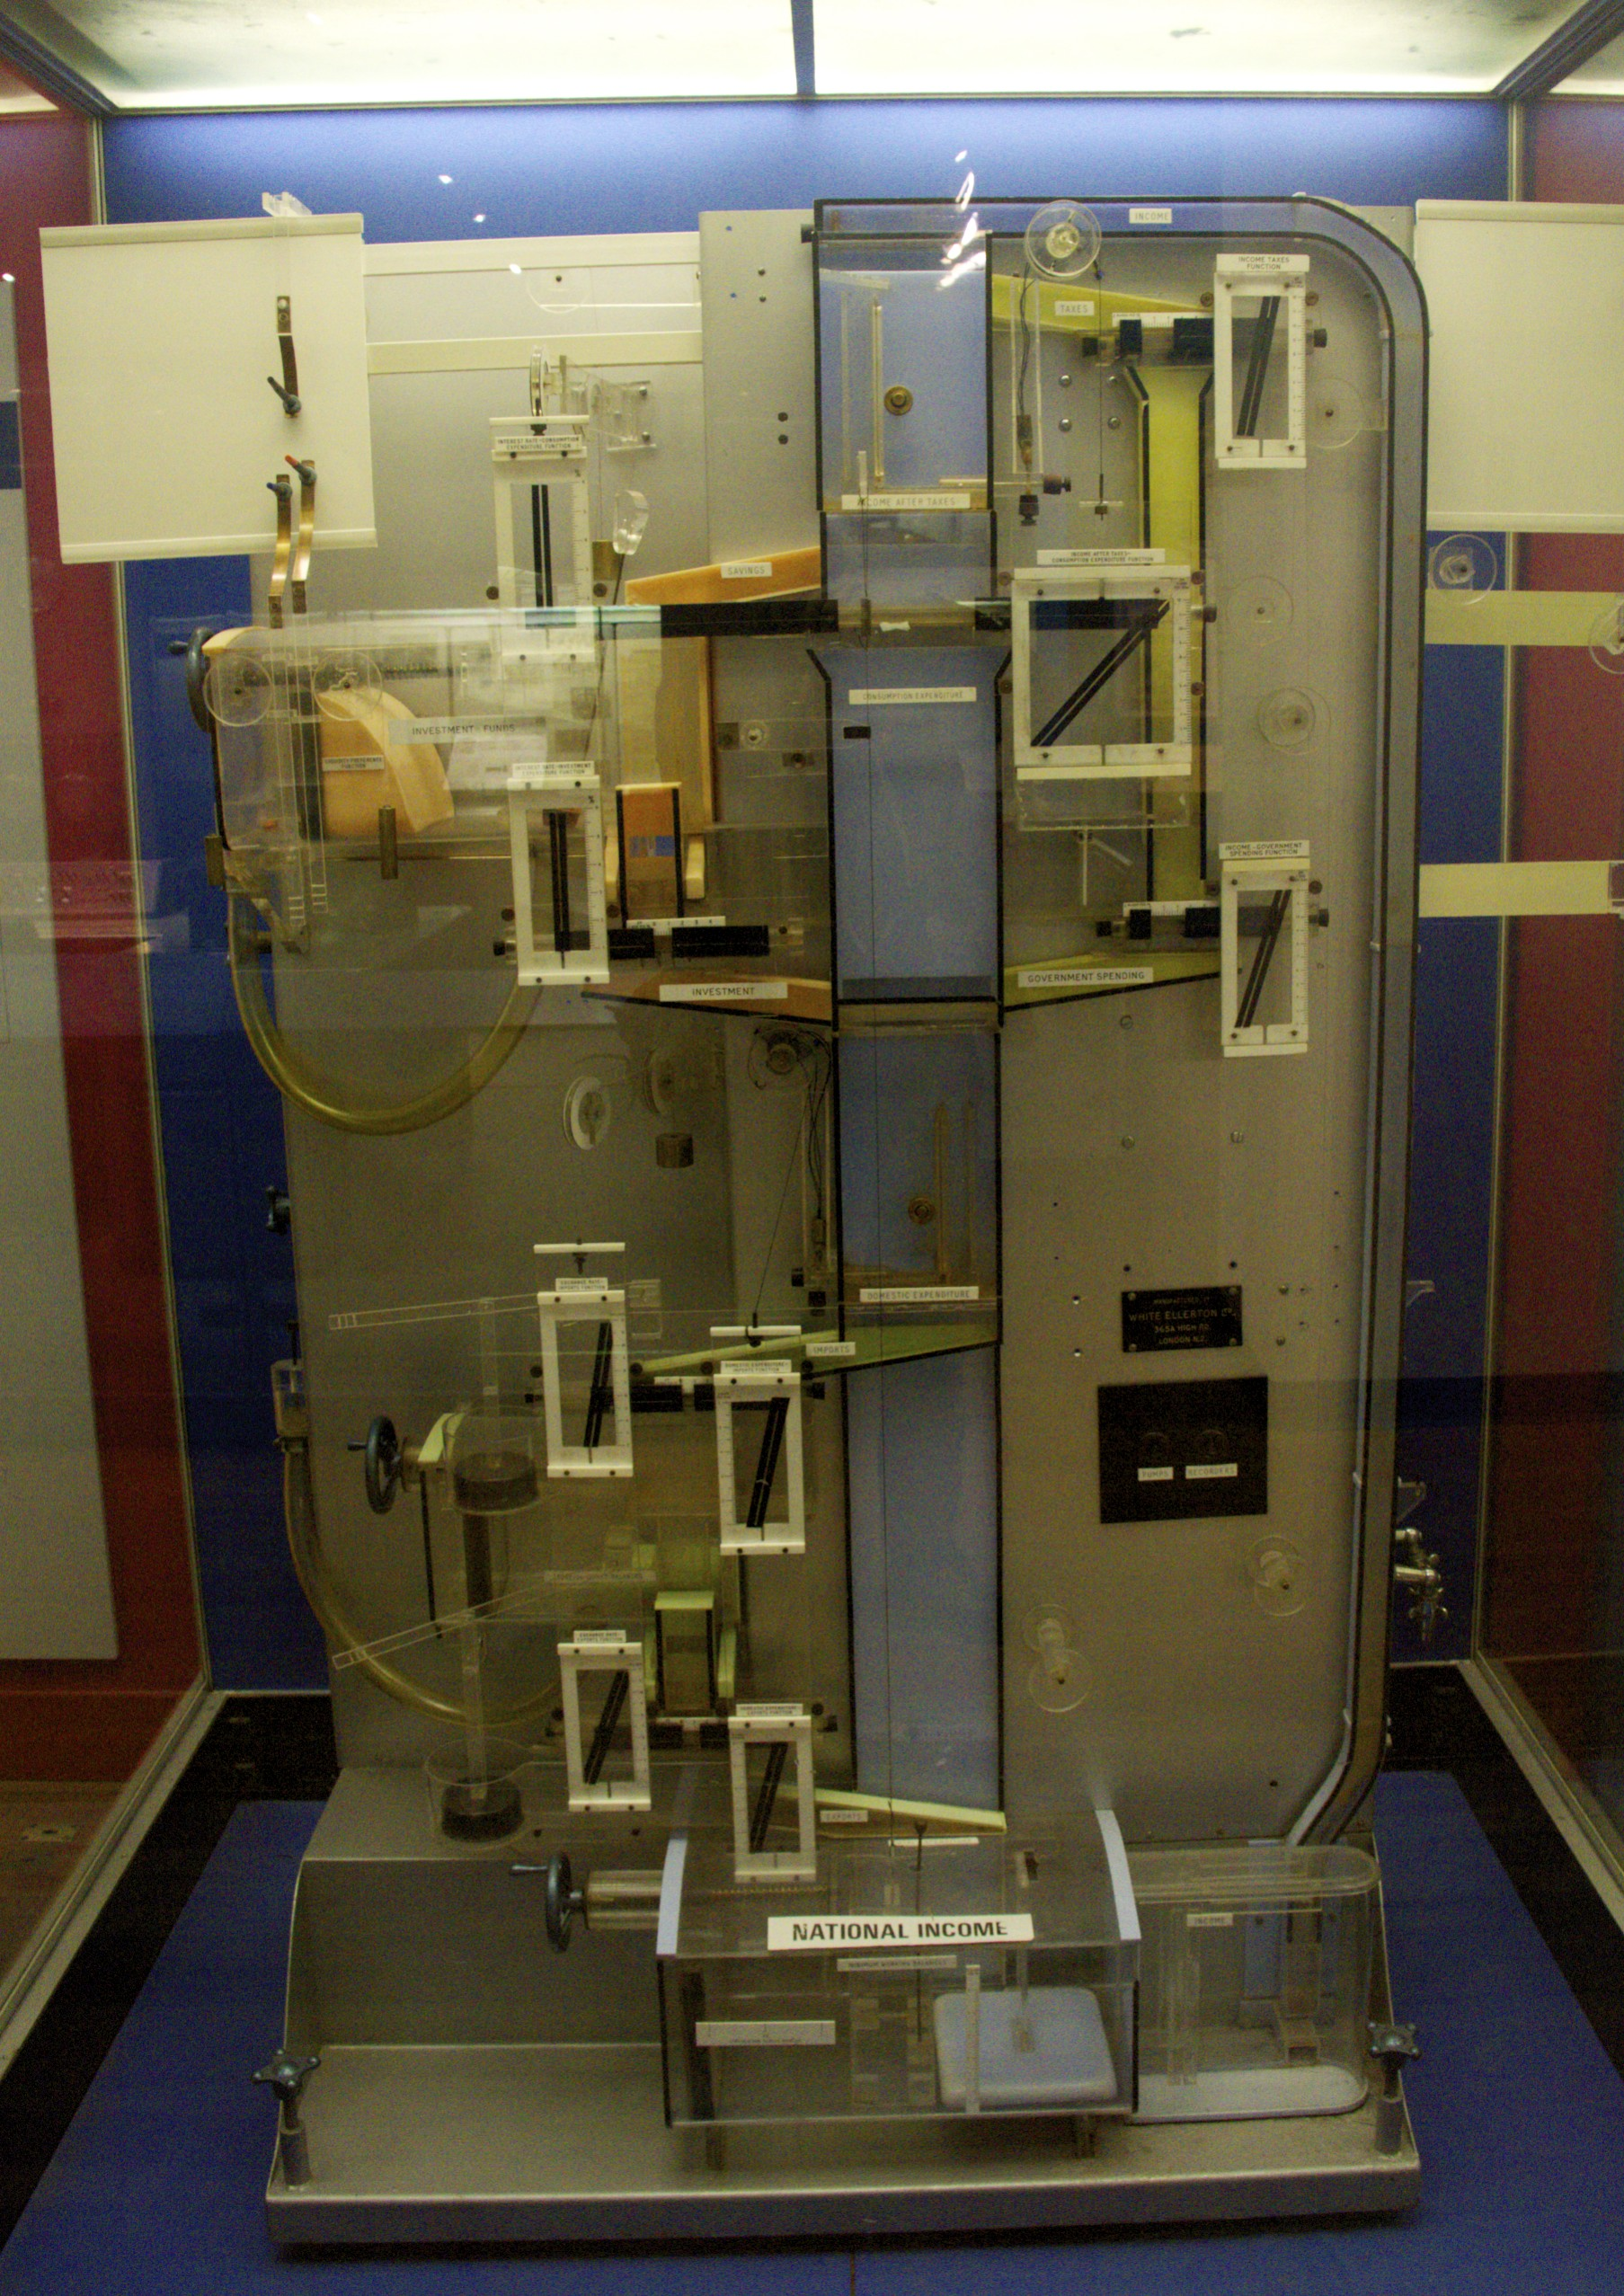 MONIAC computer exhibited in the Science Museum London (2013).